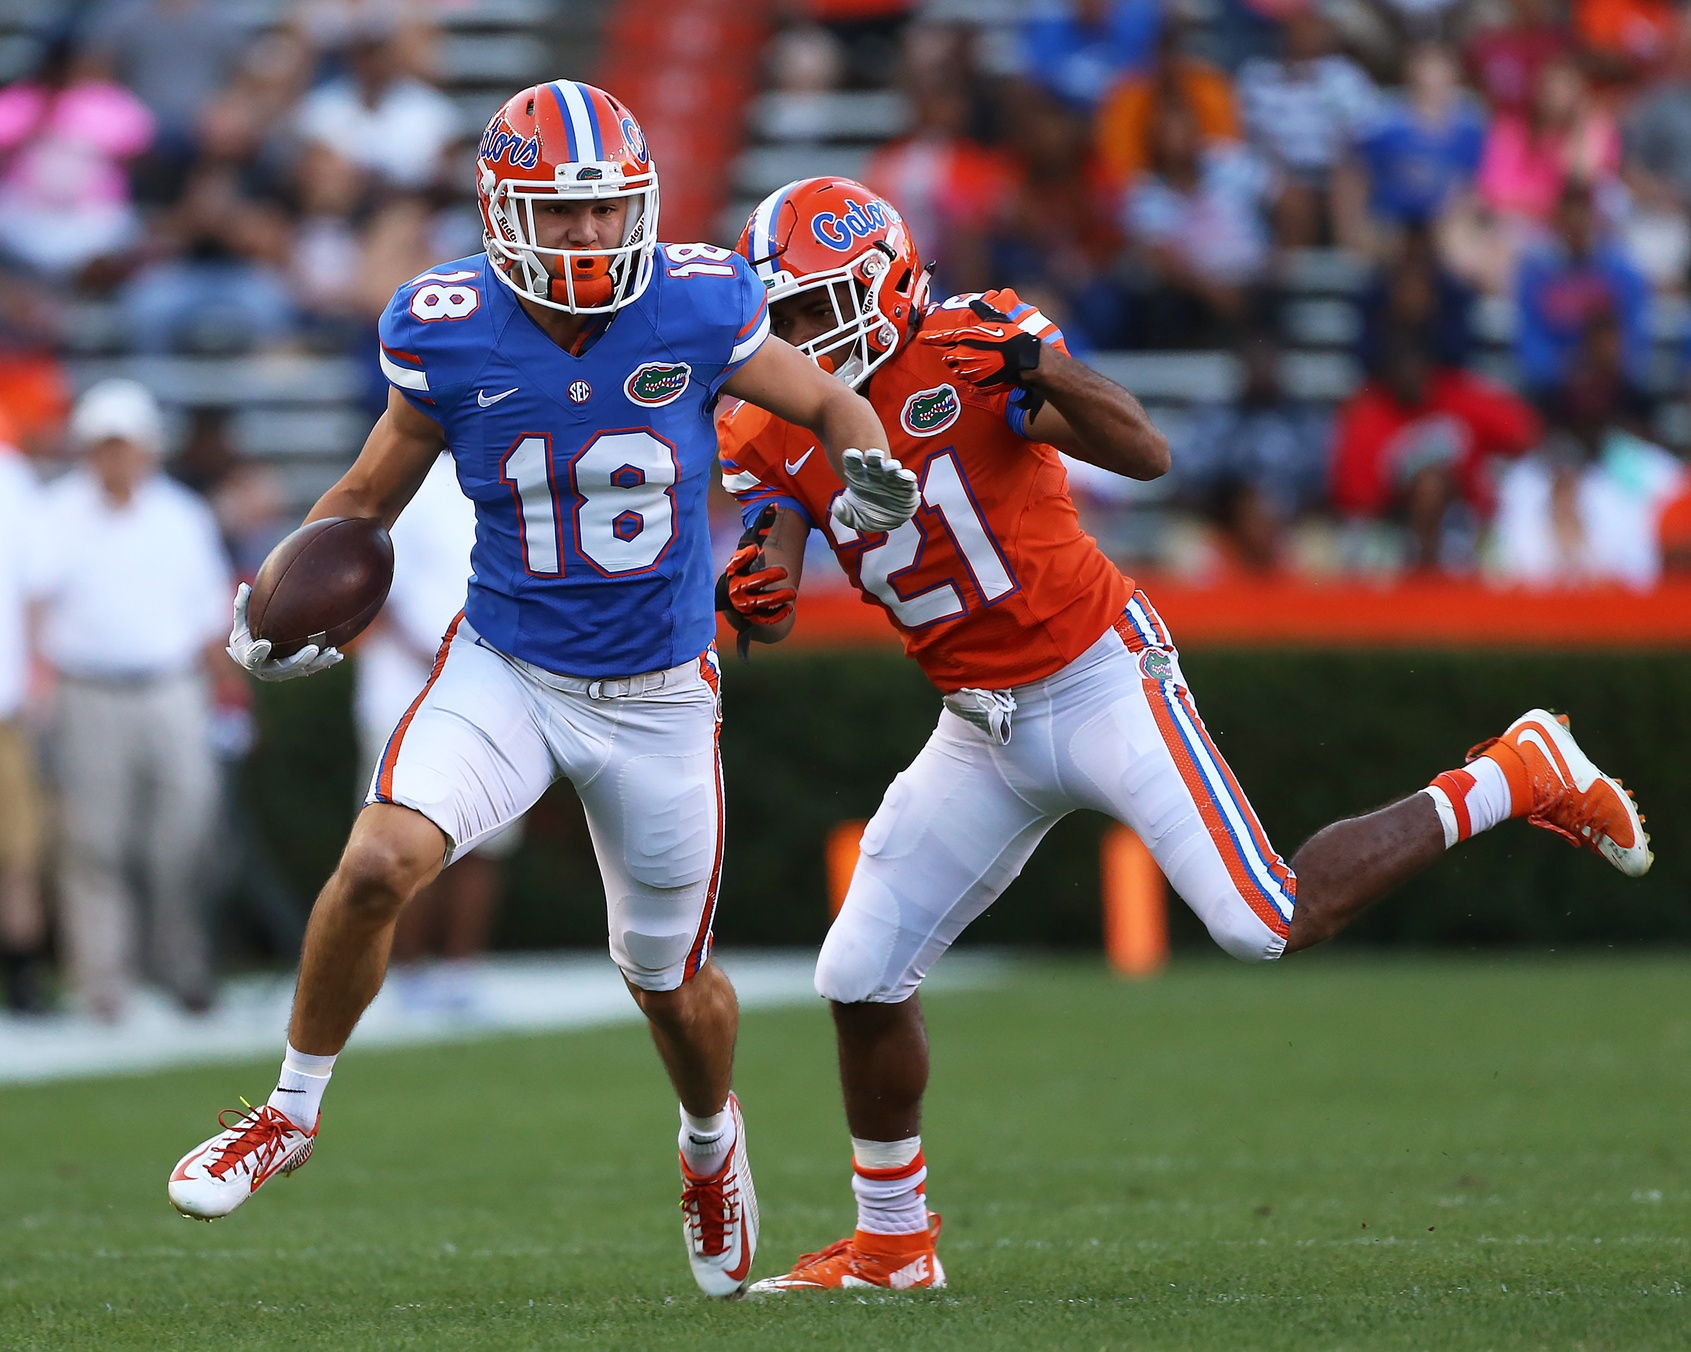 The conversation that changed everything for Gators WR C.J. Worton